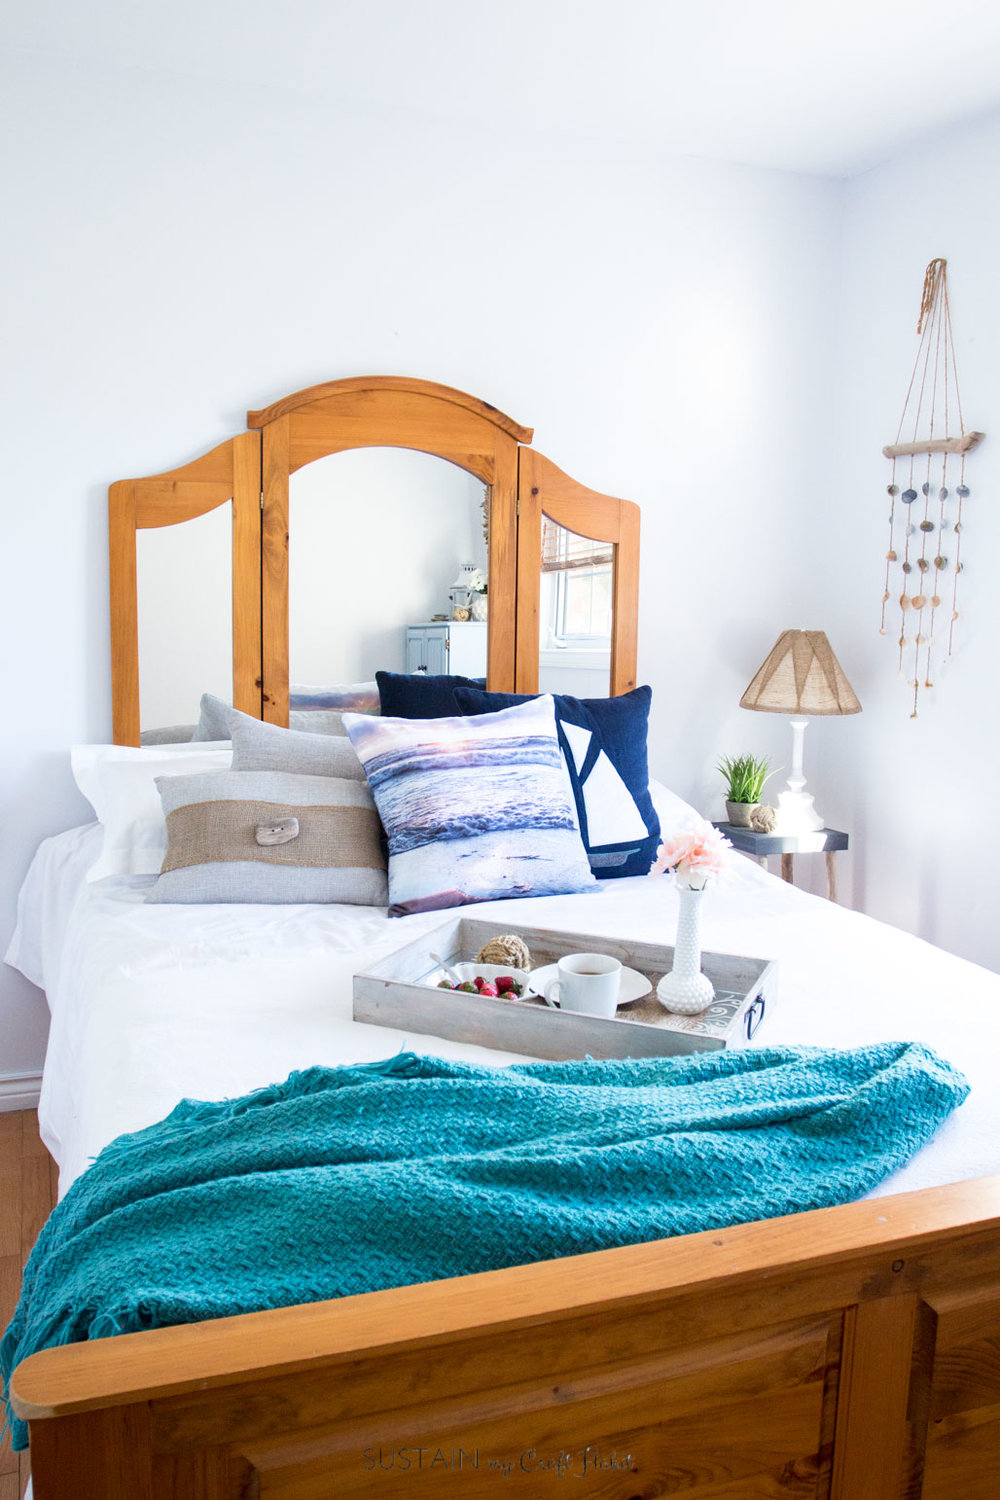 Almost 15 DIY coastal cottage decorating ideas in this one bedroom! Check out how you can create your own serene oasis of relaxation on a budget. Video tour included!